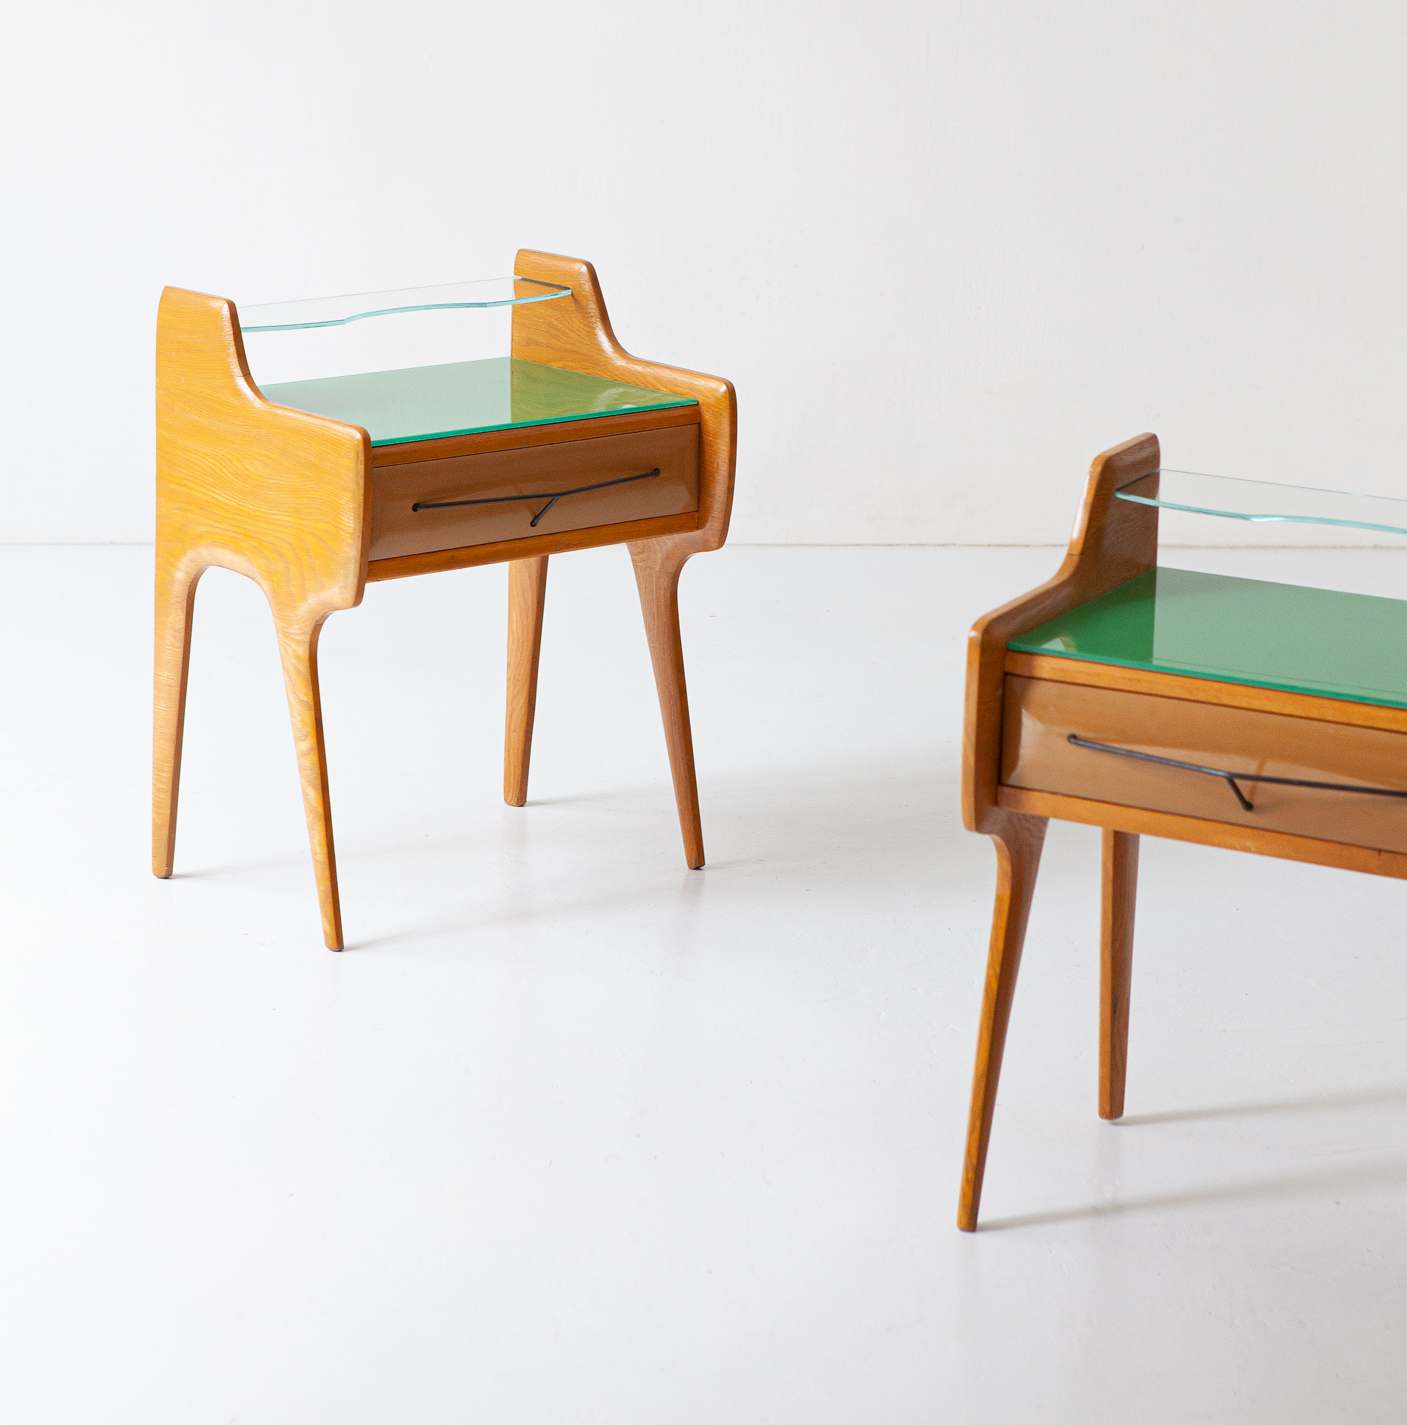 Pair of bedside tables in oak wood with green glass top BT98